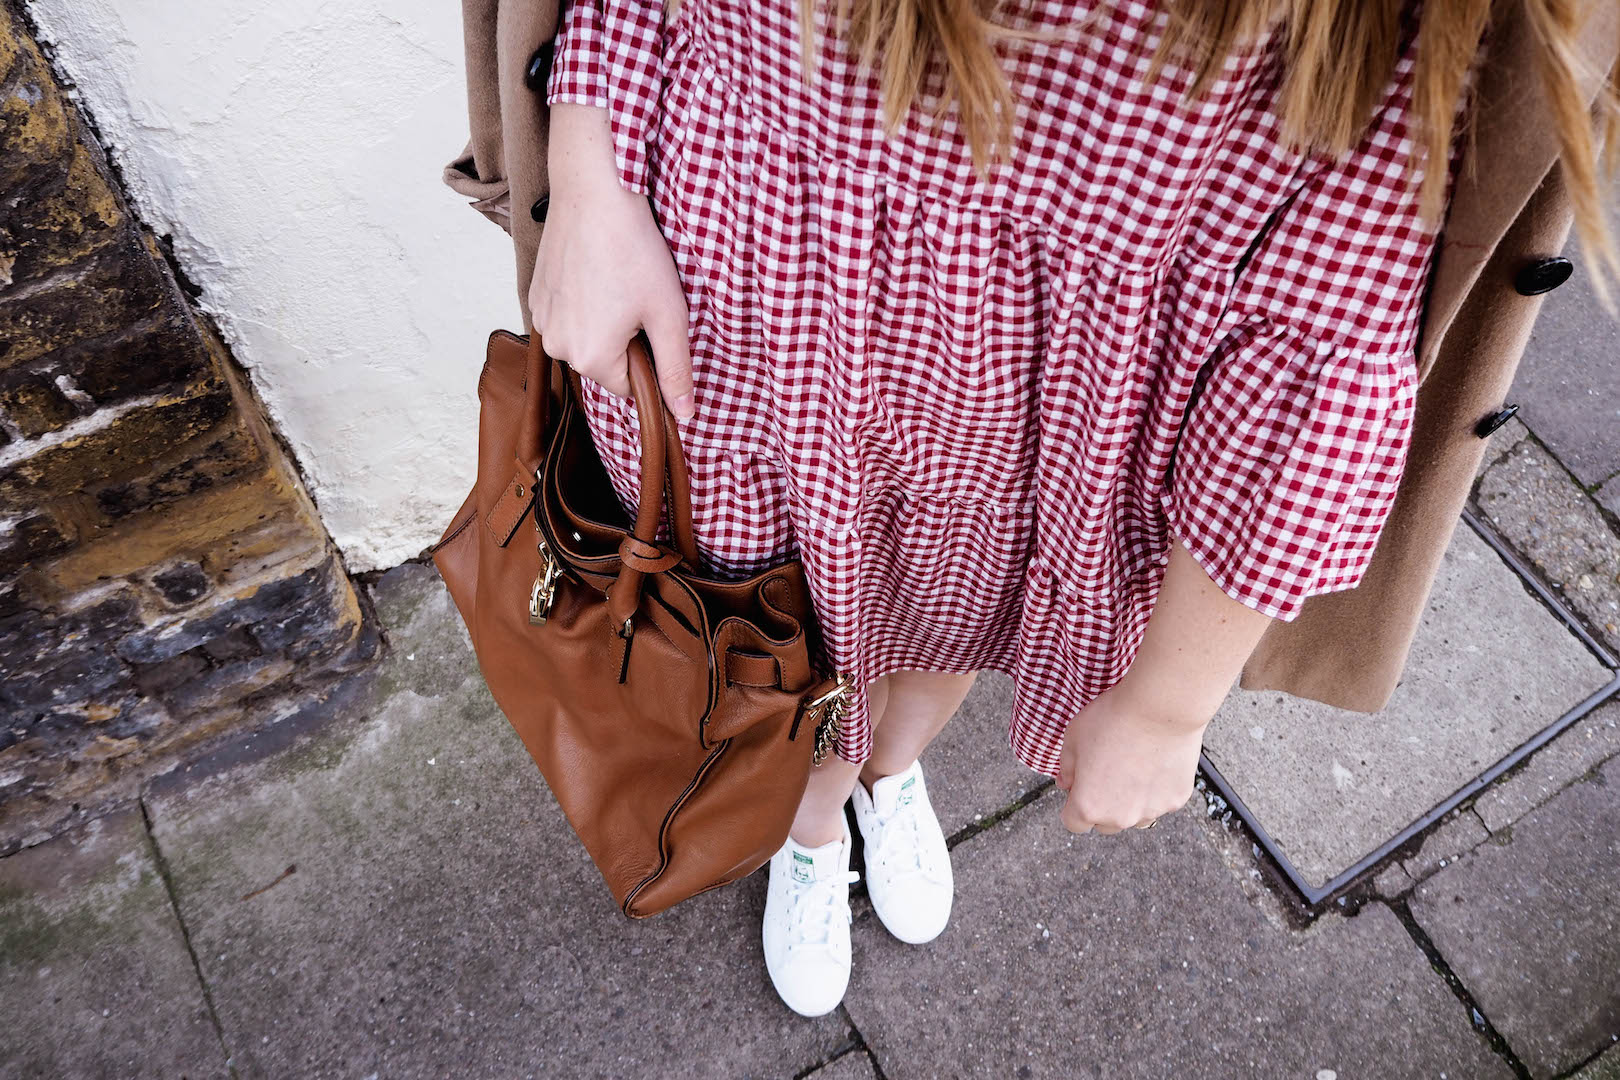 Zara gingham dress | Michael Kors satchel | Adidas white trainers | ASOS camel coat | Wolf & Stag